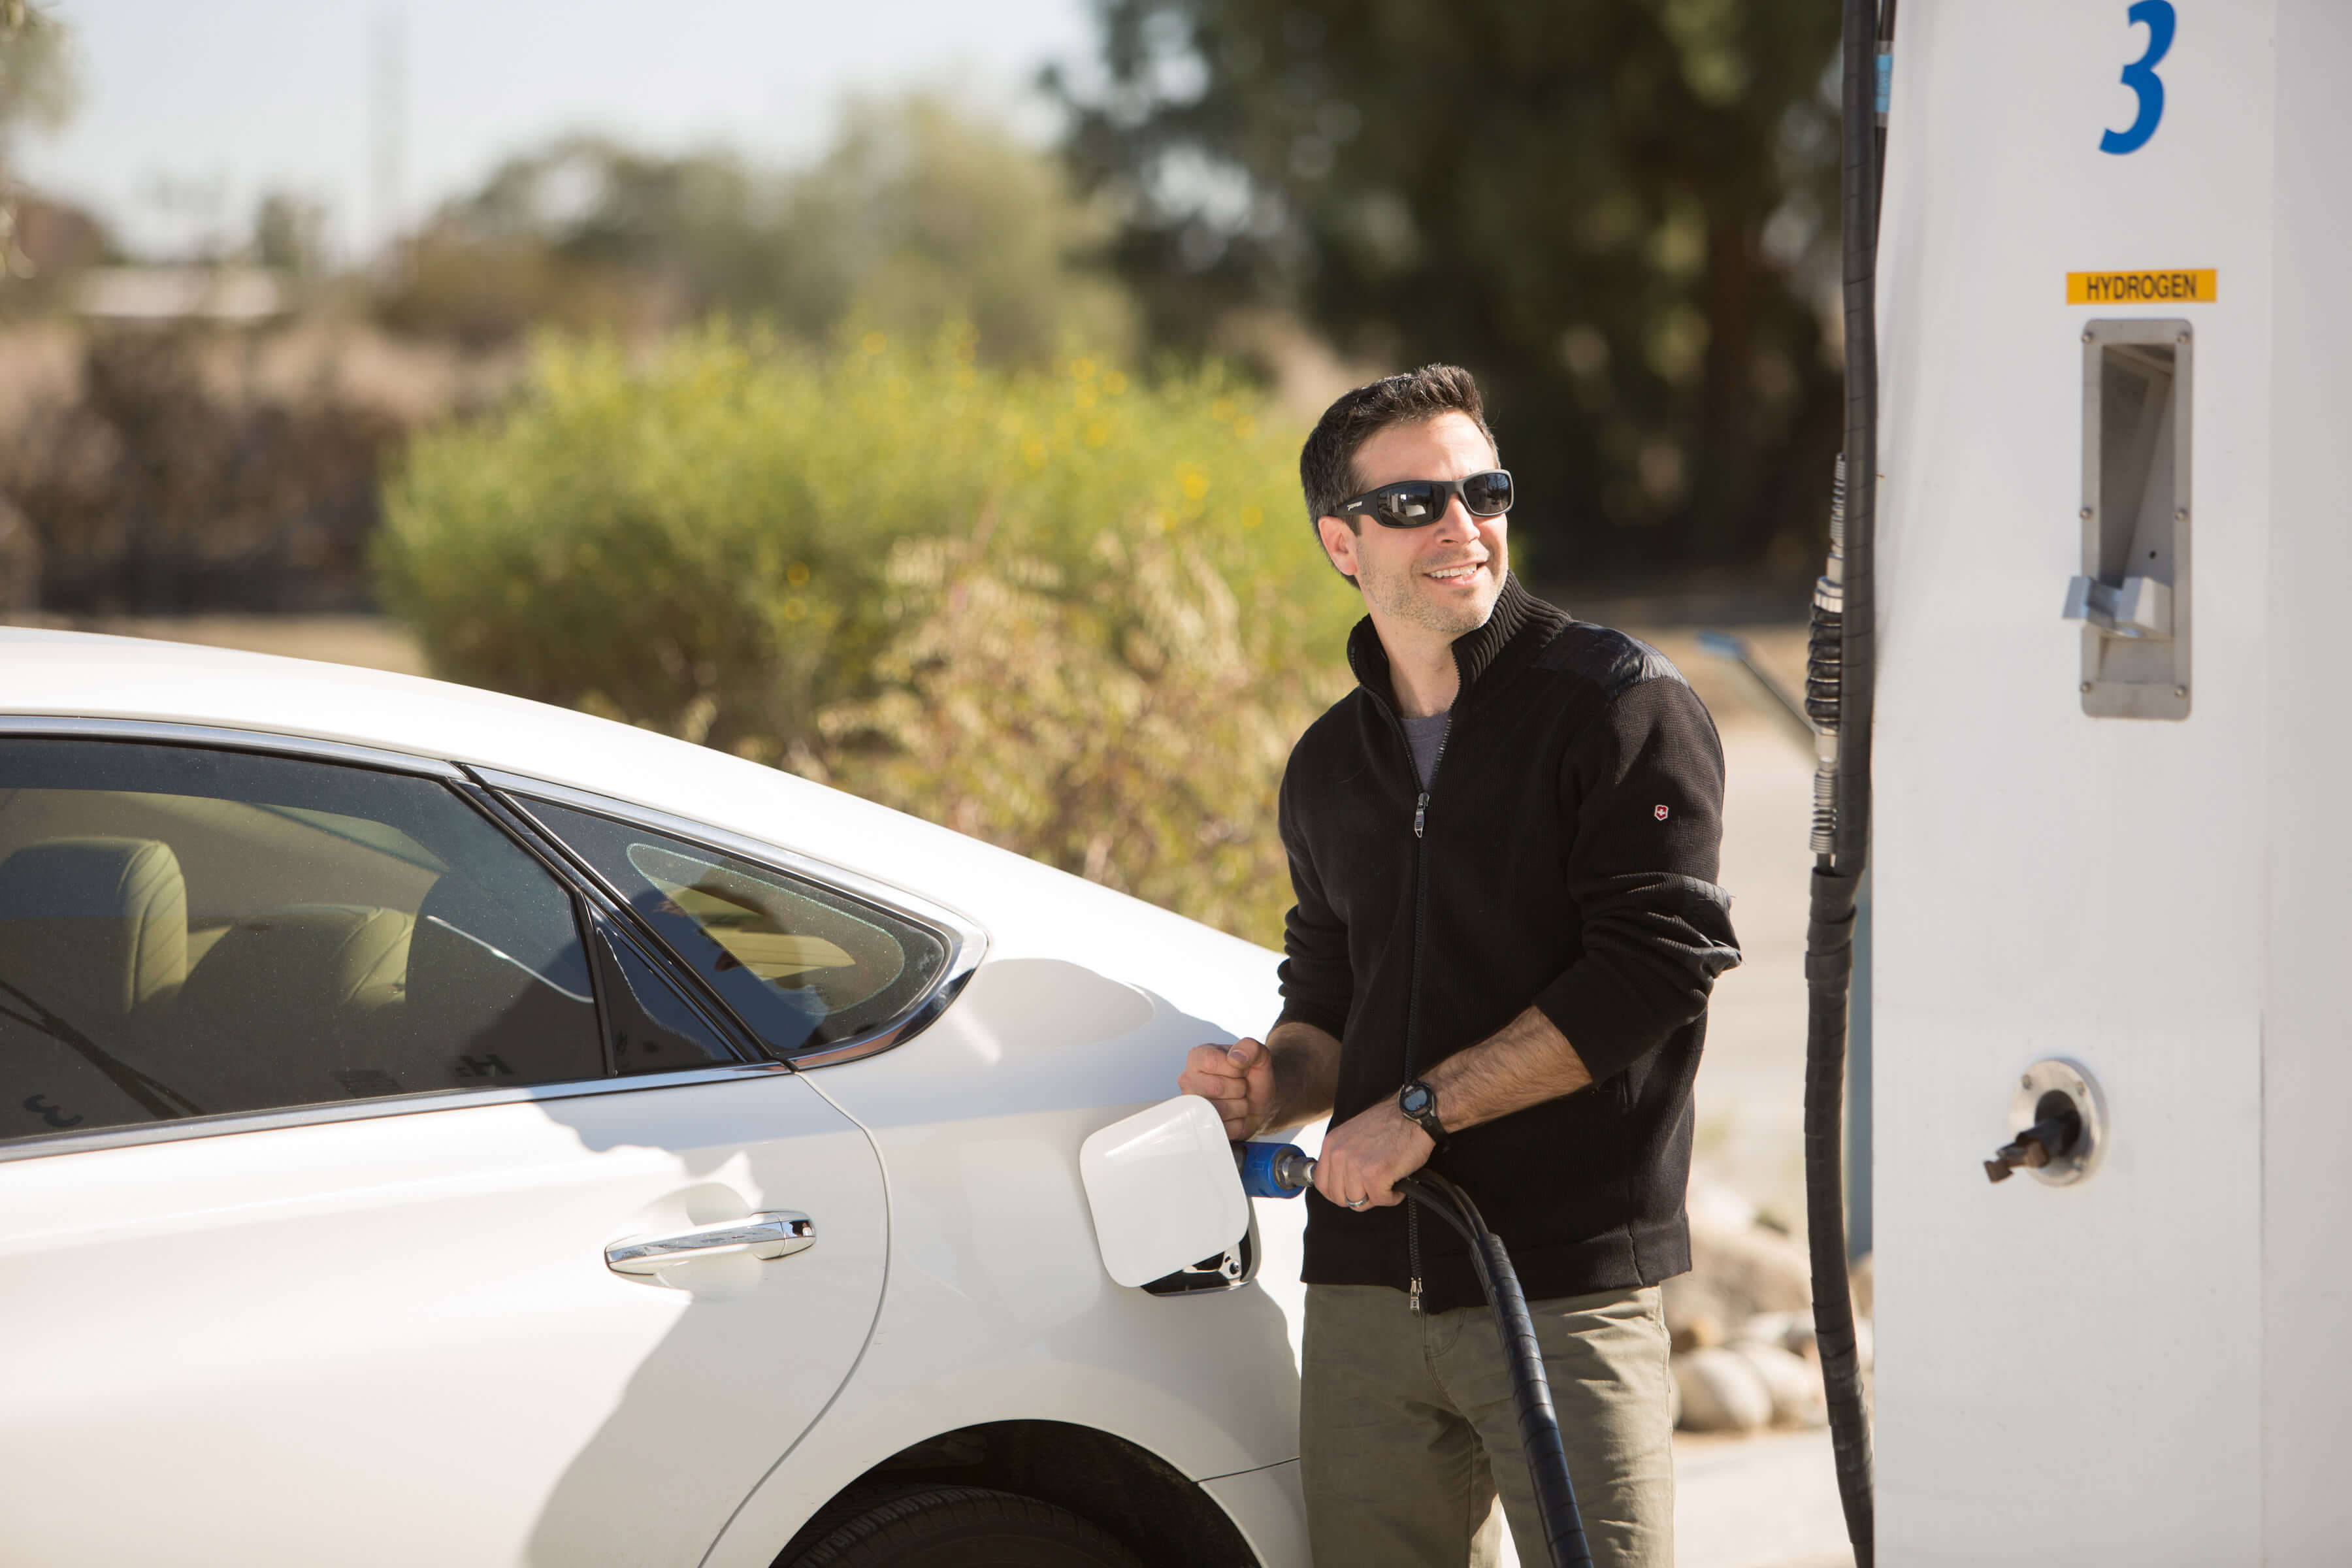 Fueling at Thousand Palms' Clean Fuel Pumps